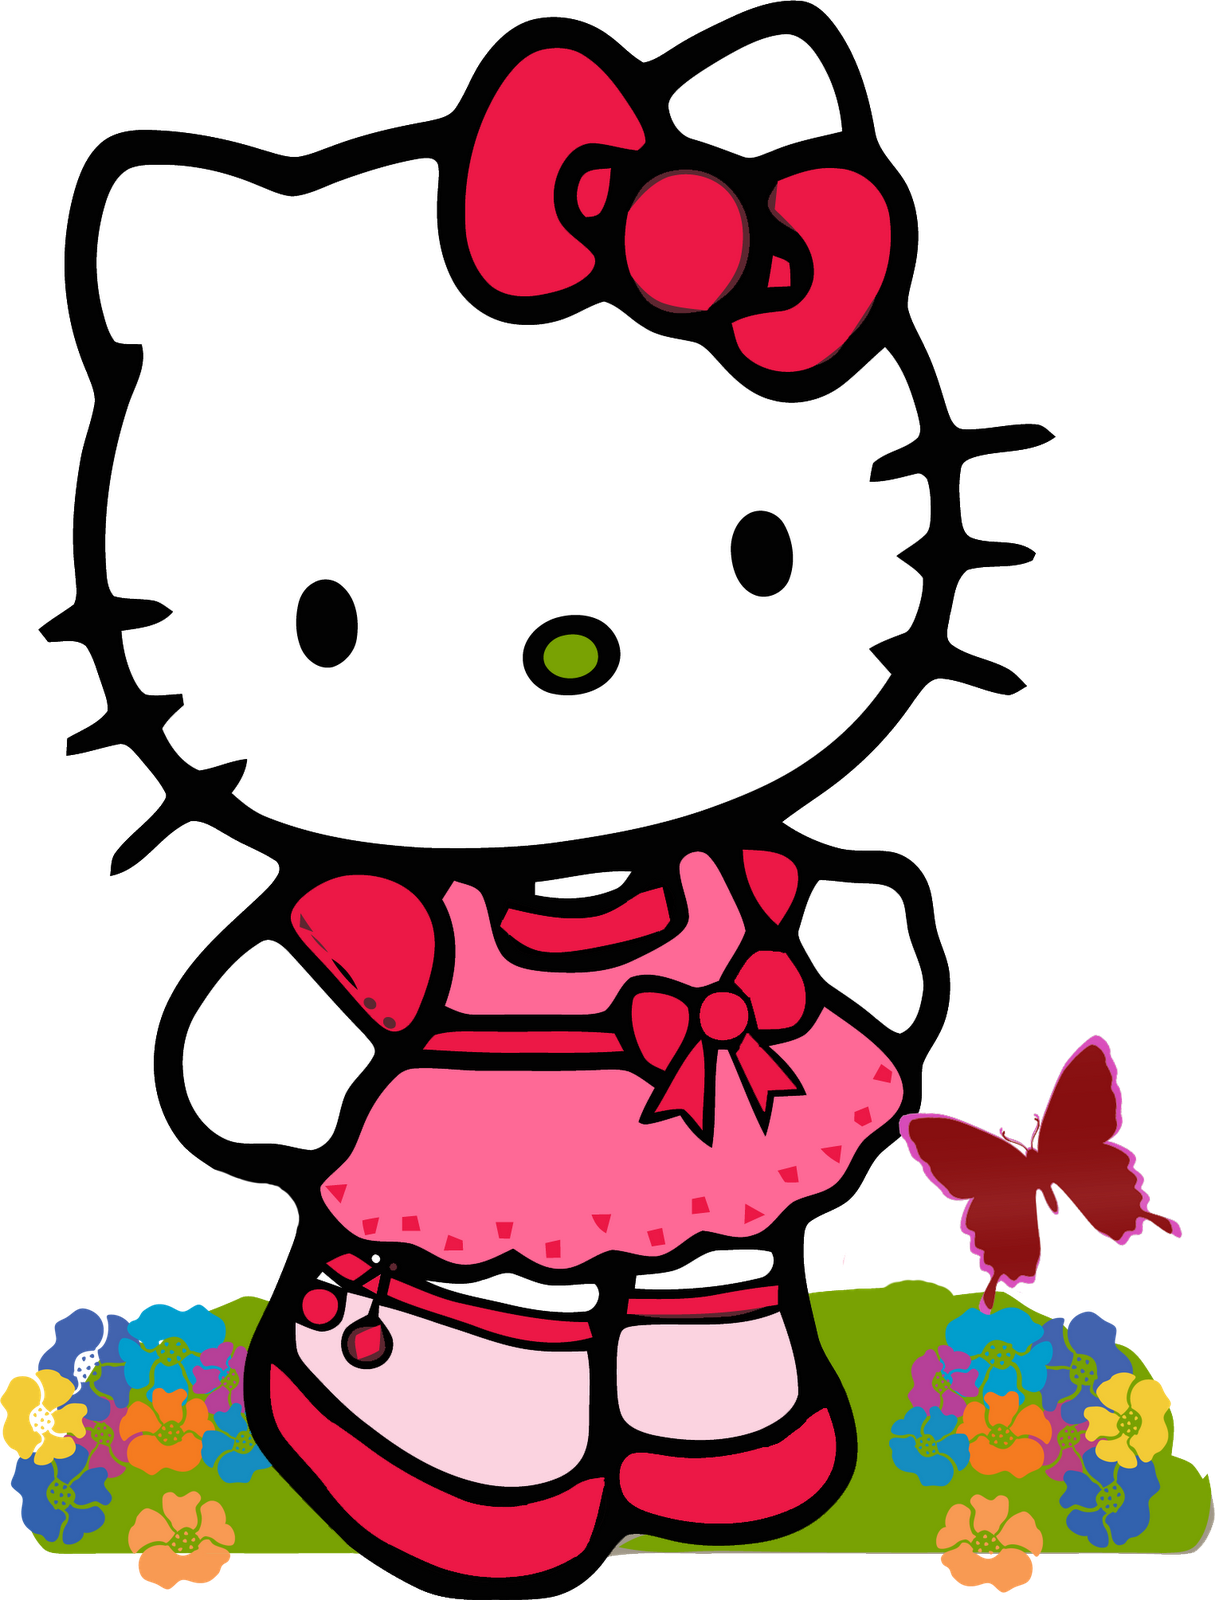 imageslist com hello kitty images part 3